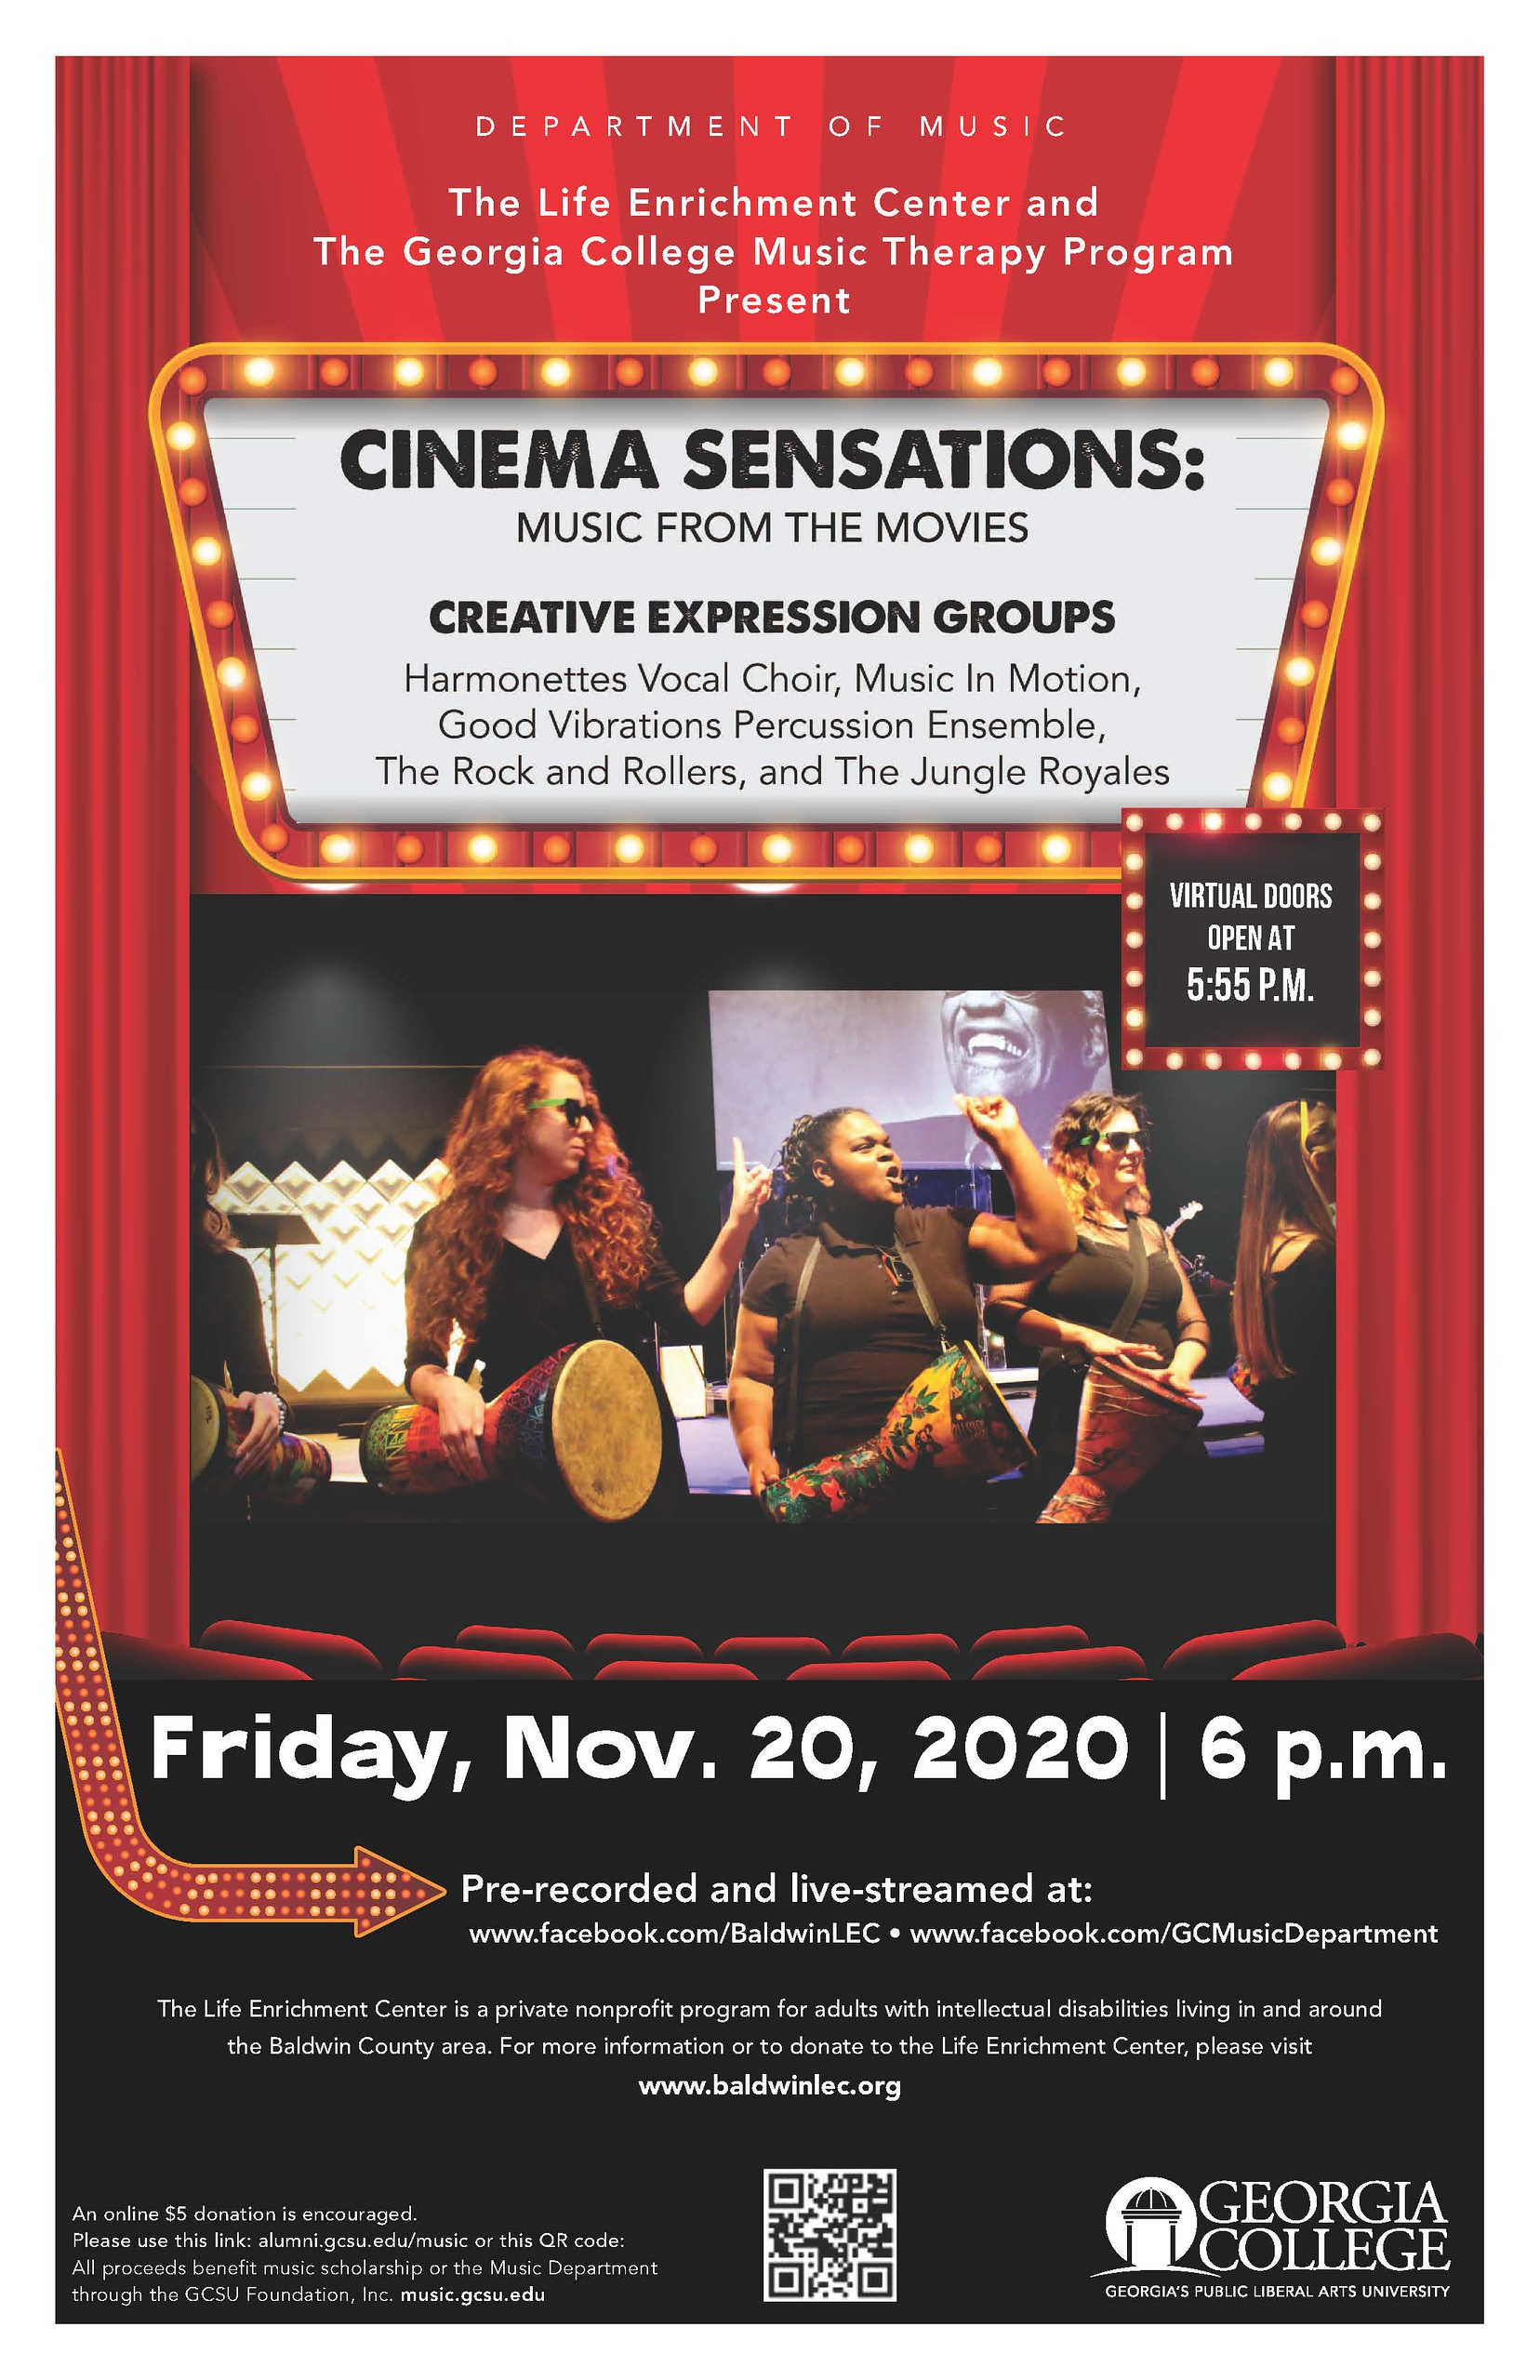 Please join us at 6 pm on Friday, Nov. 20 for this event!